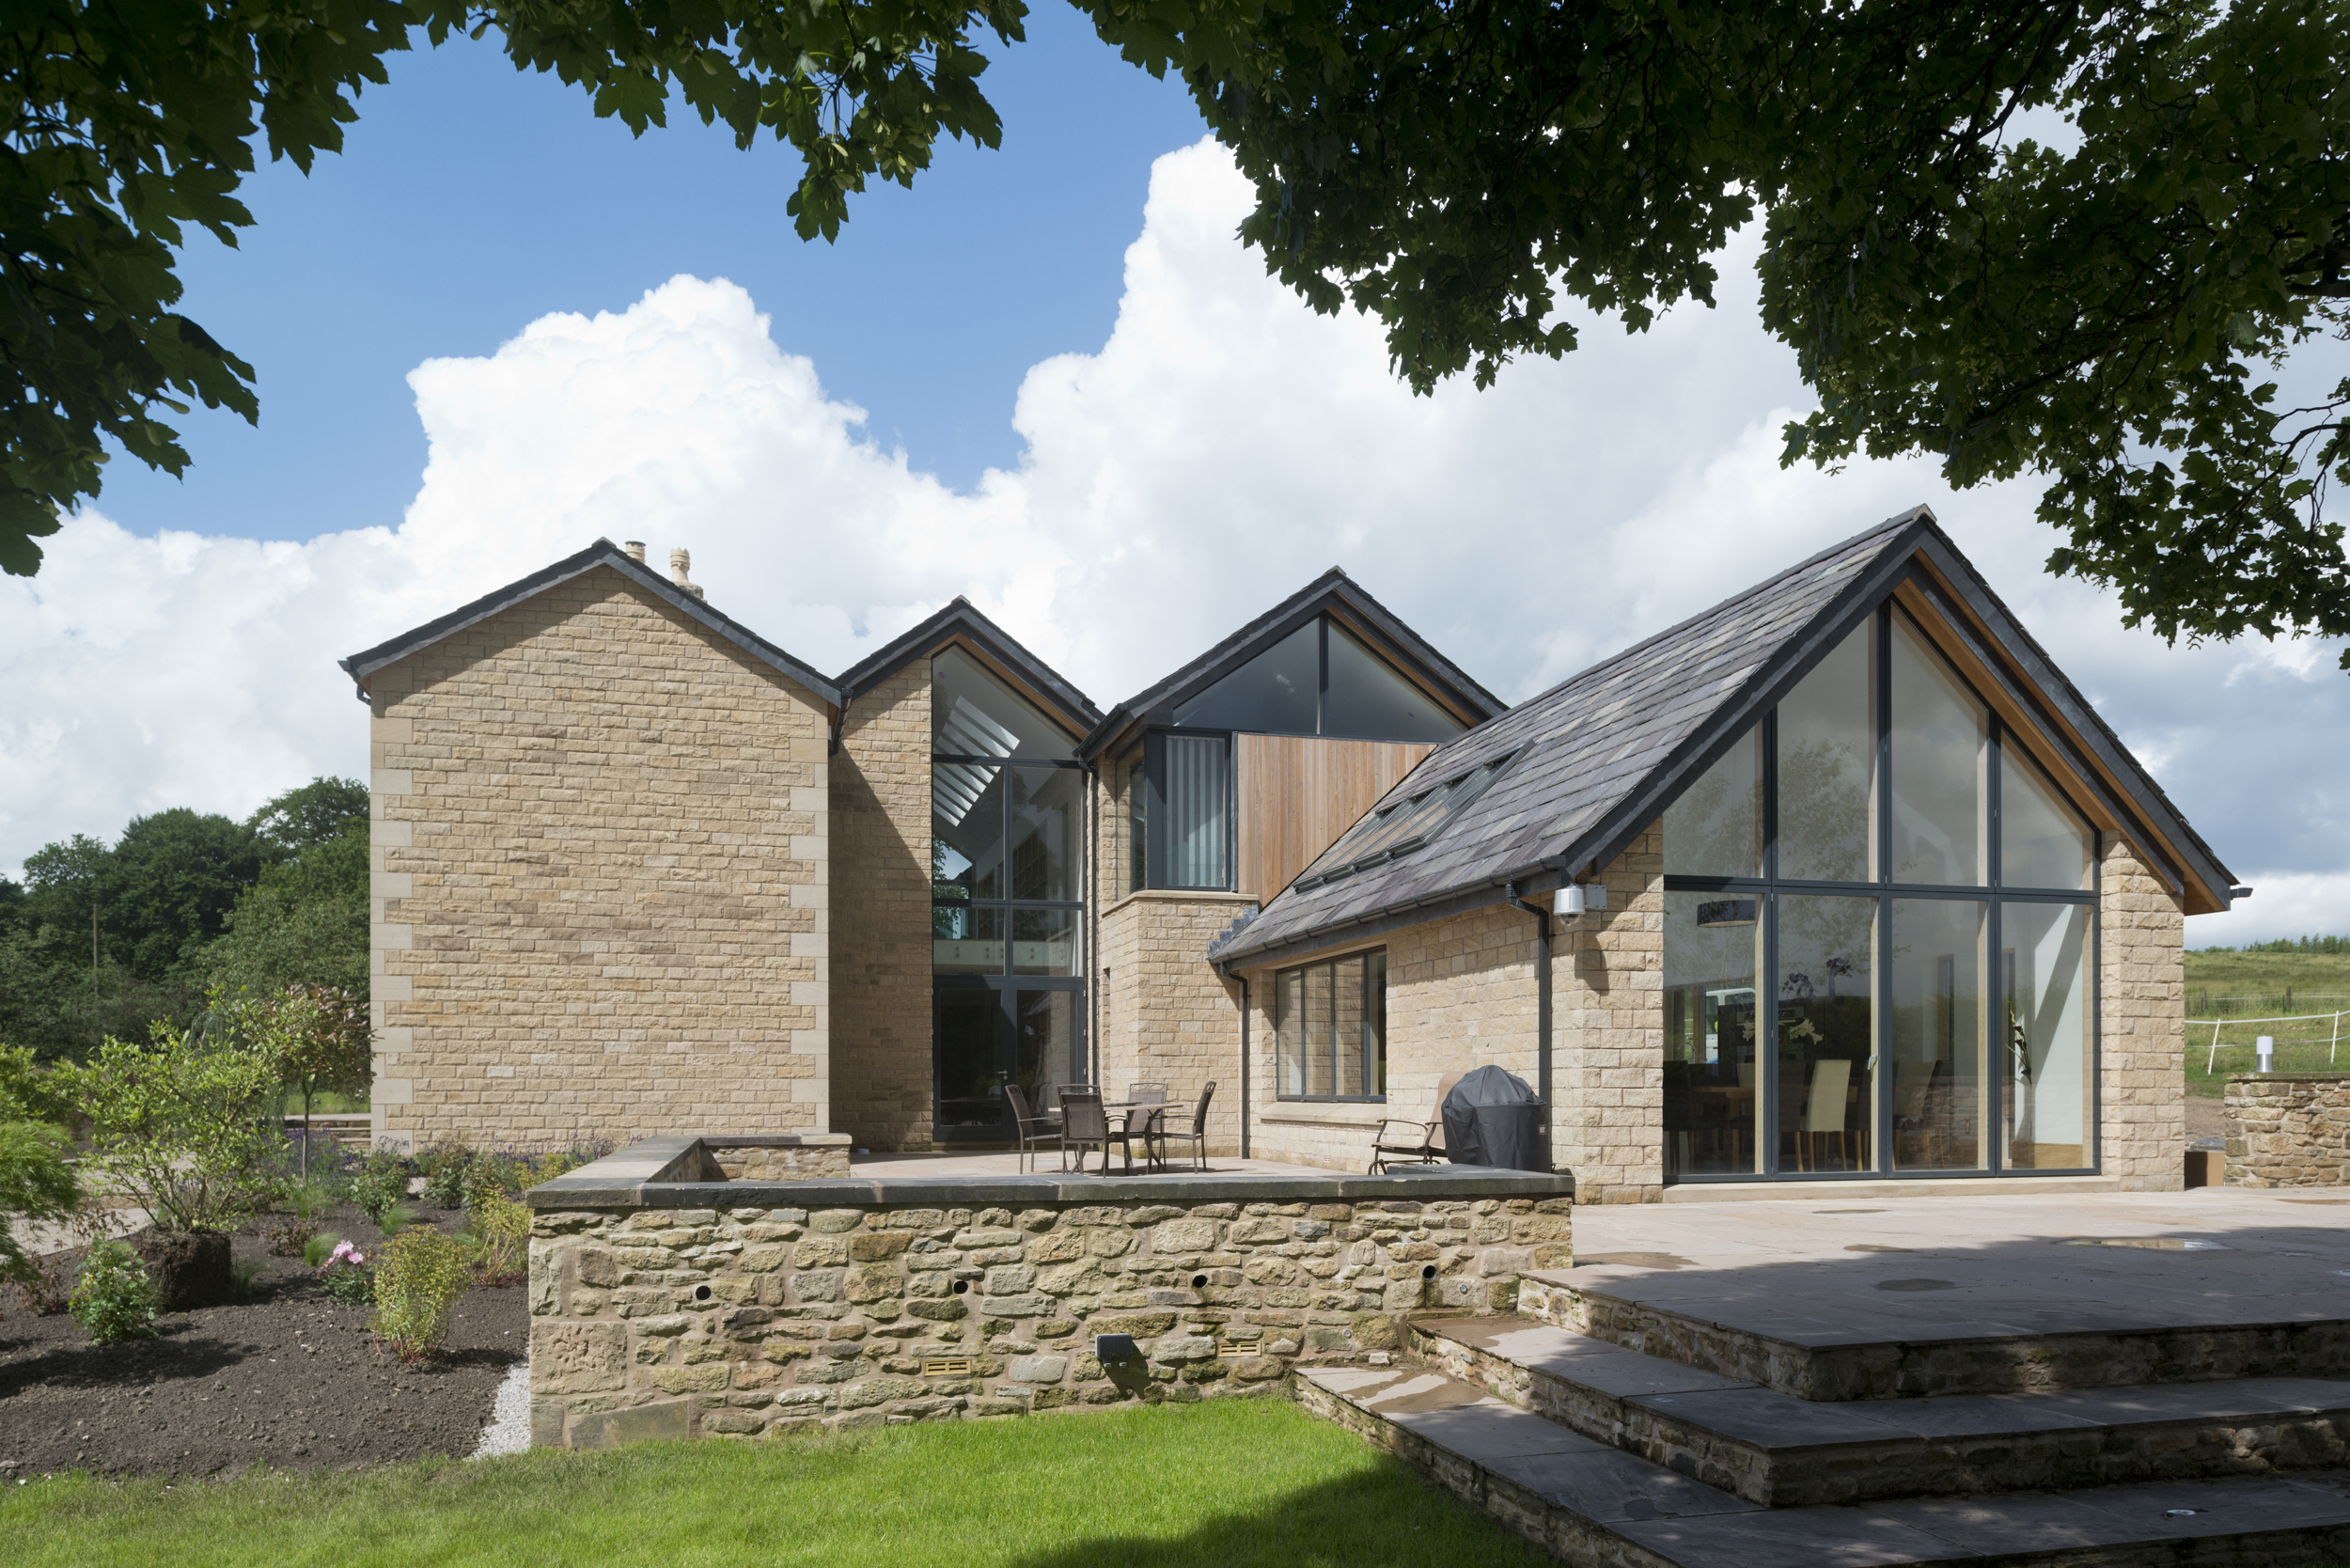 Withygill Lodge, Clitheroe